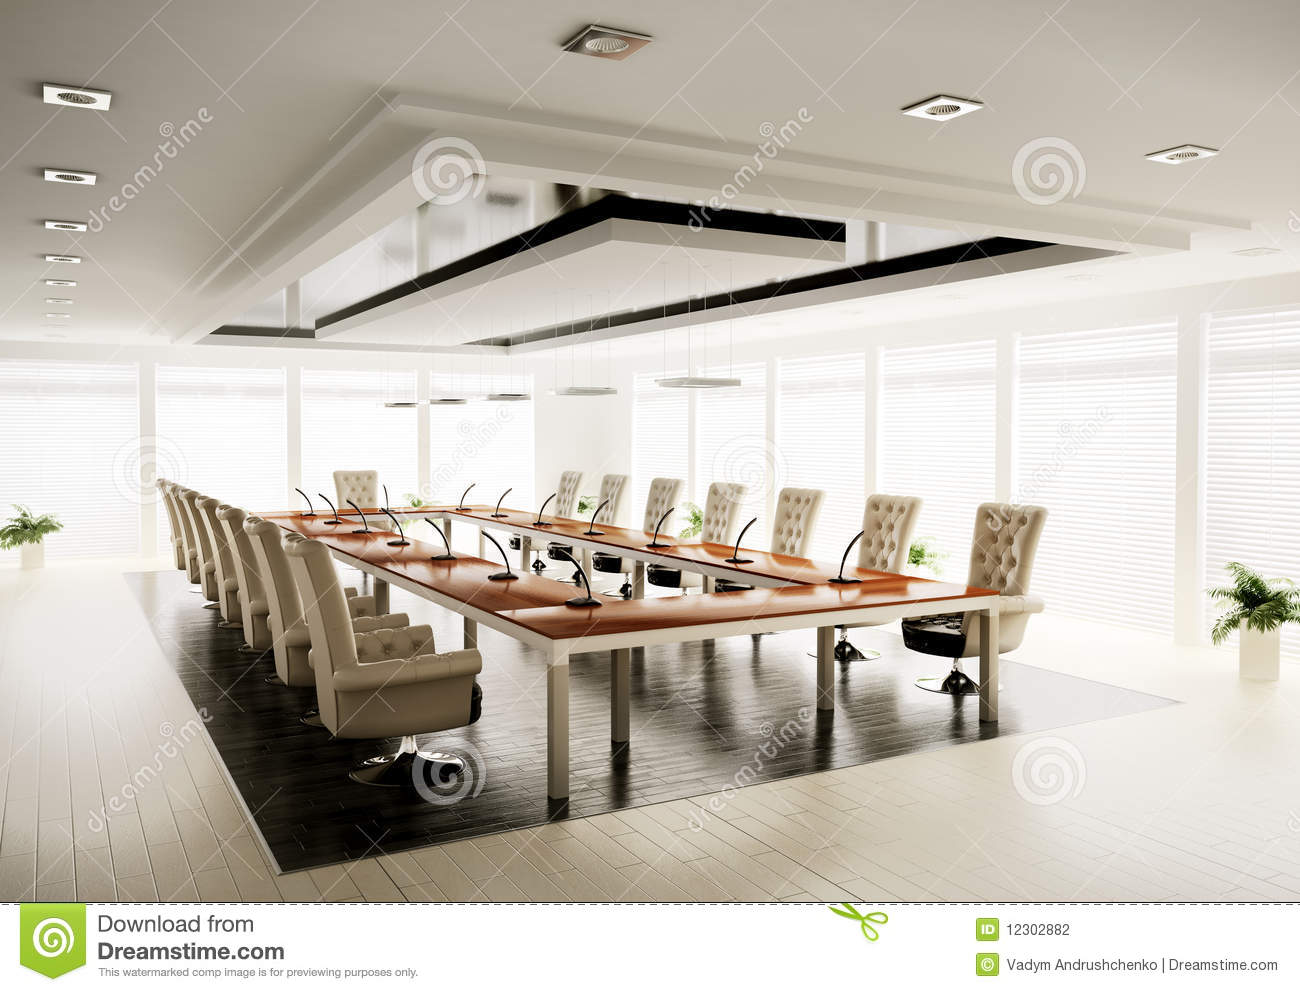 Conference Room 3d Render Stock Photography - Image: 12302882